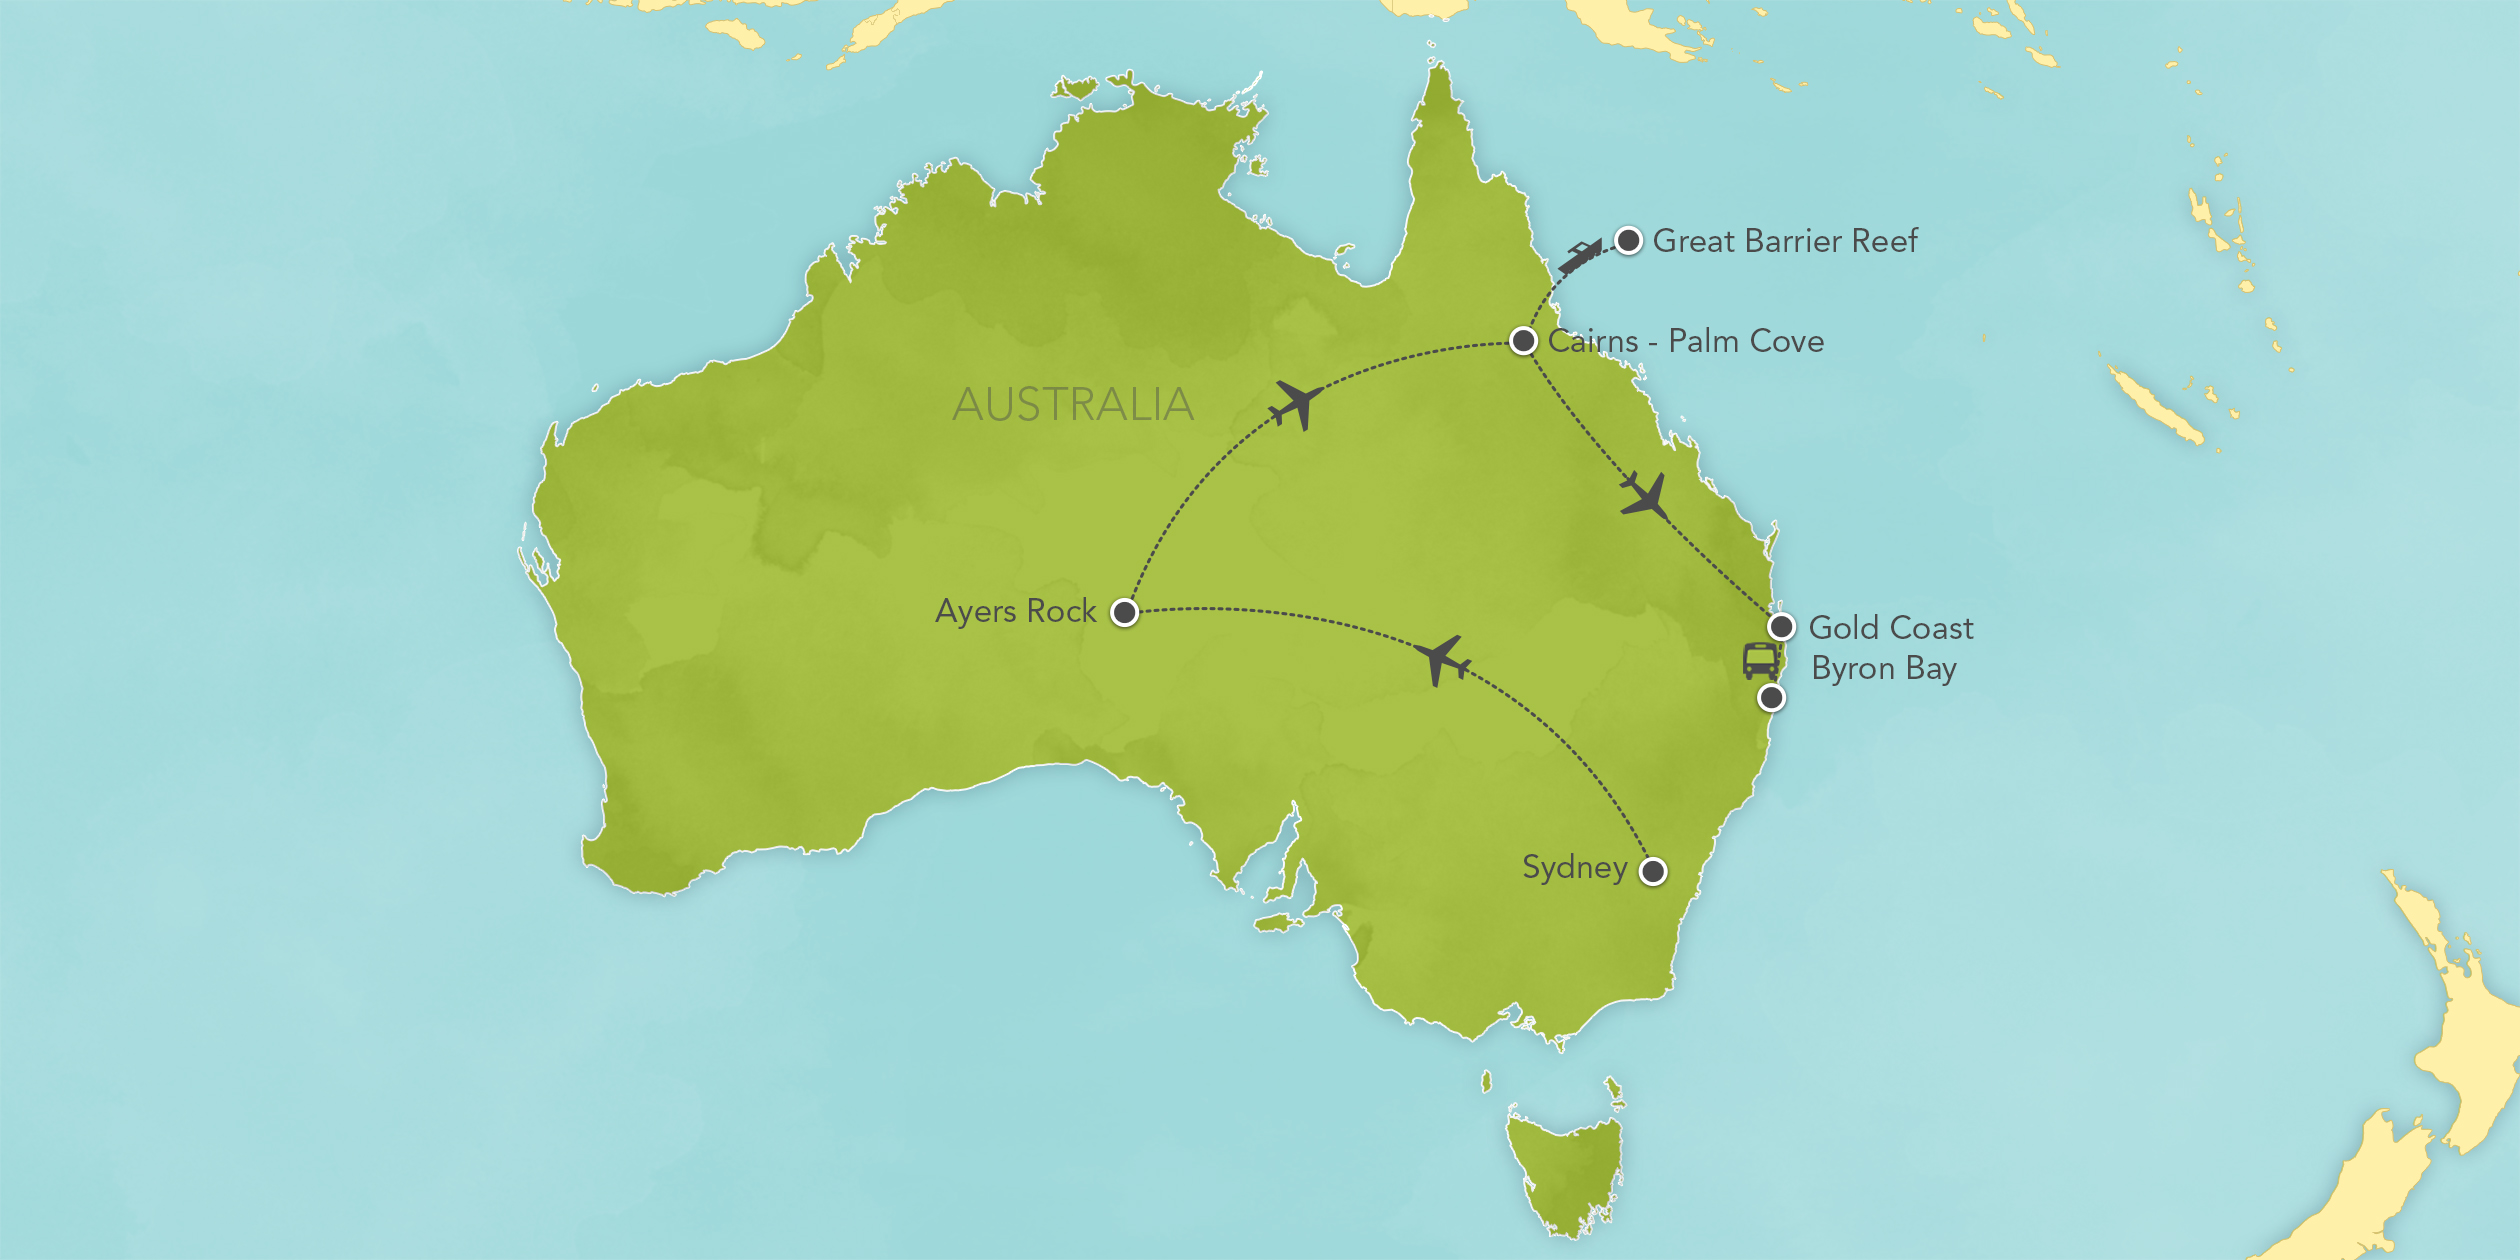 Itinerary map of Australia: Sydney, Ayers Rock, Tasmania & Great Barrier Reef 2018